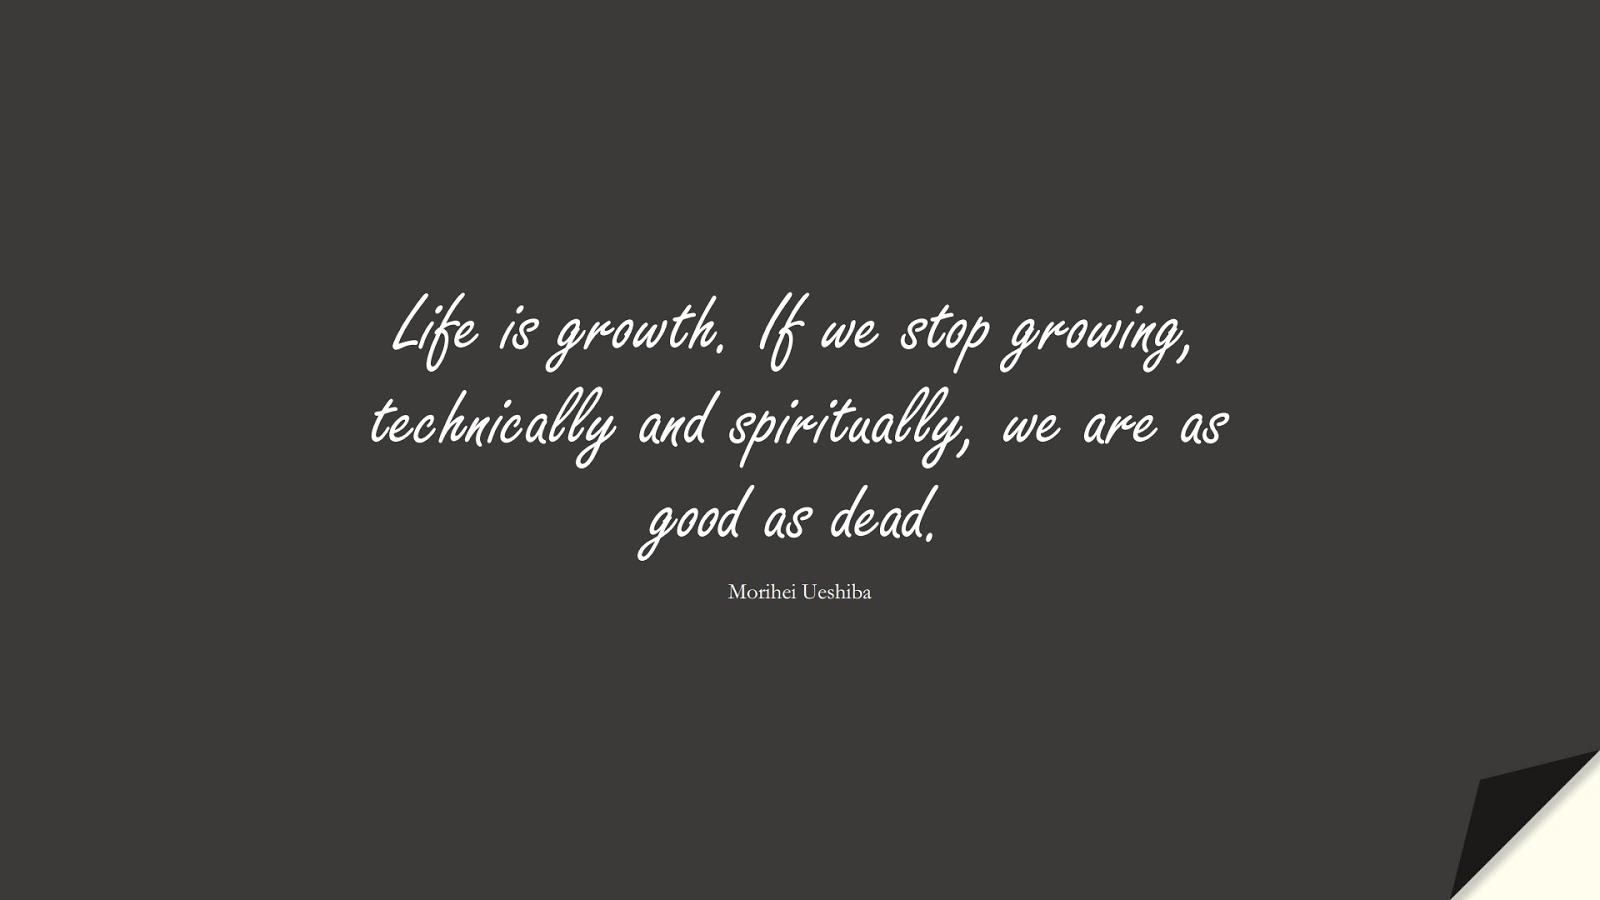 Life is growth. If we stop growing, technically and spiritually, we are as good as dead. (Morihei Ueshiba);  #LifeQuotes